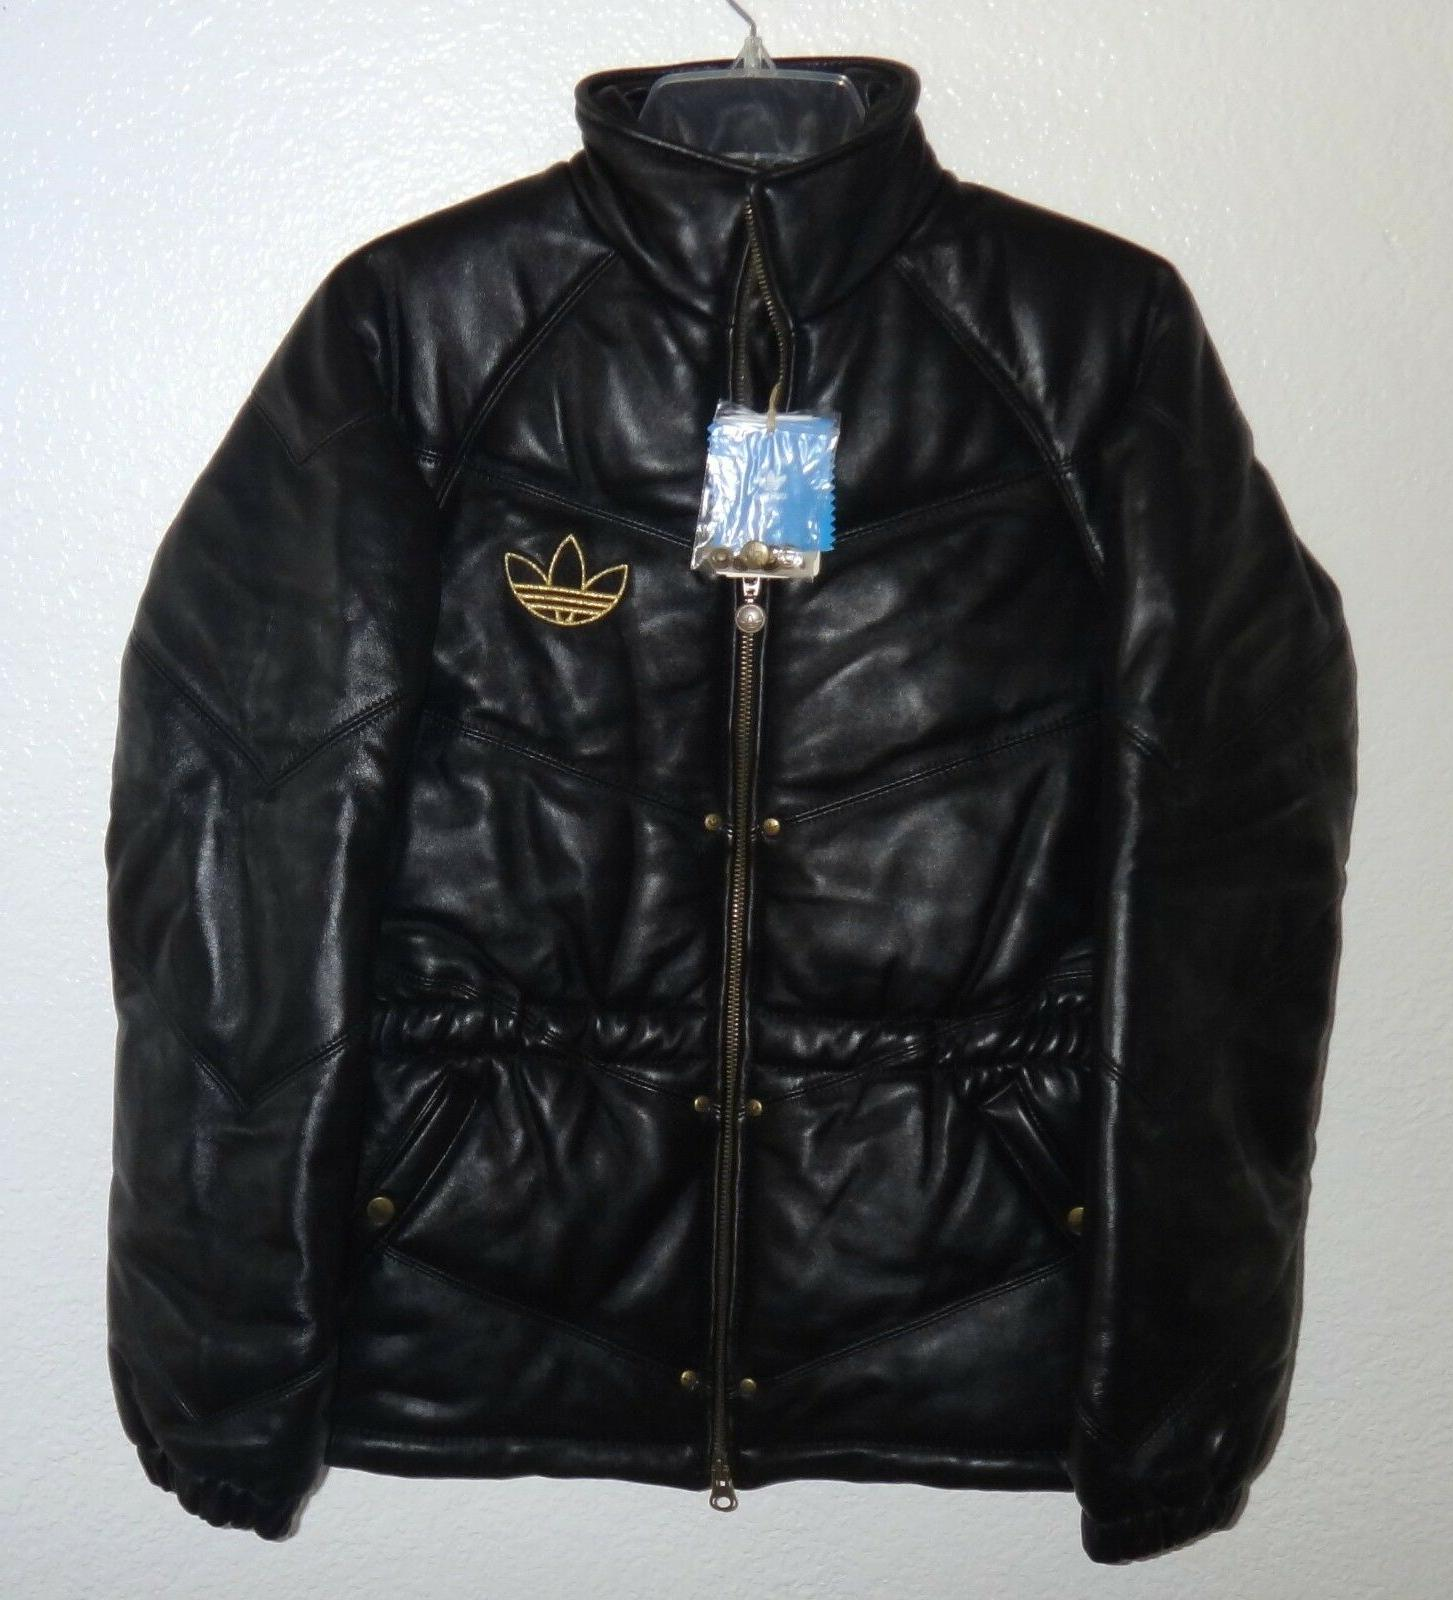 NWT WOMENS S ADIDAS ECSTACY BLACK LEATHER JACKET COAT RARE L